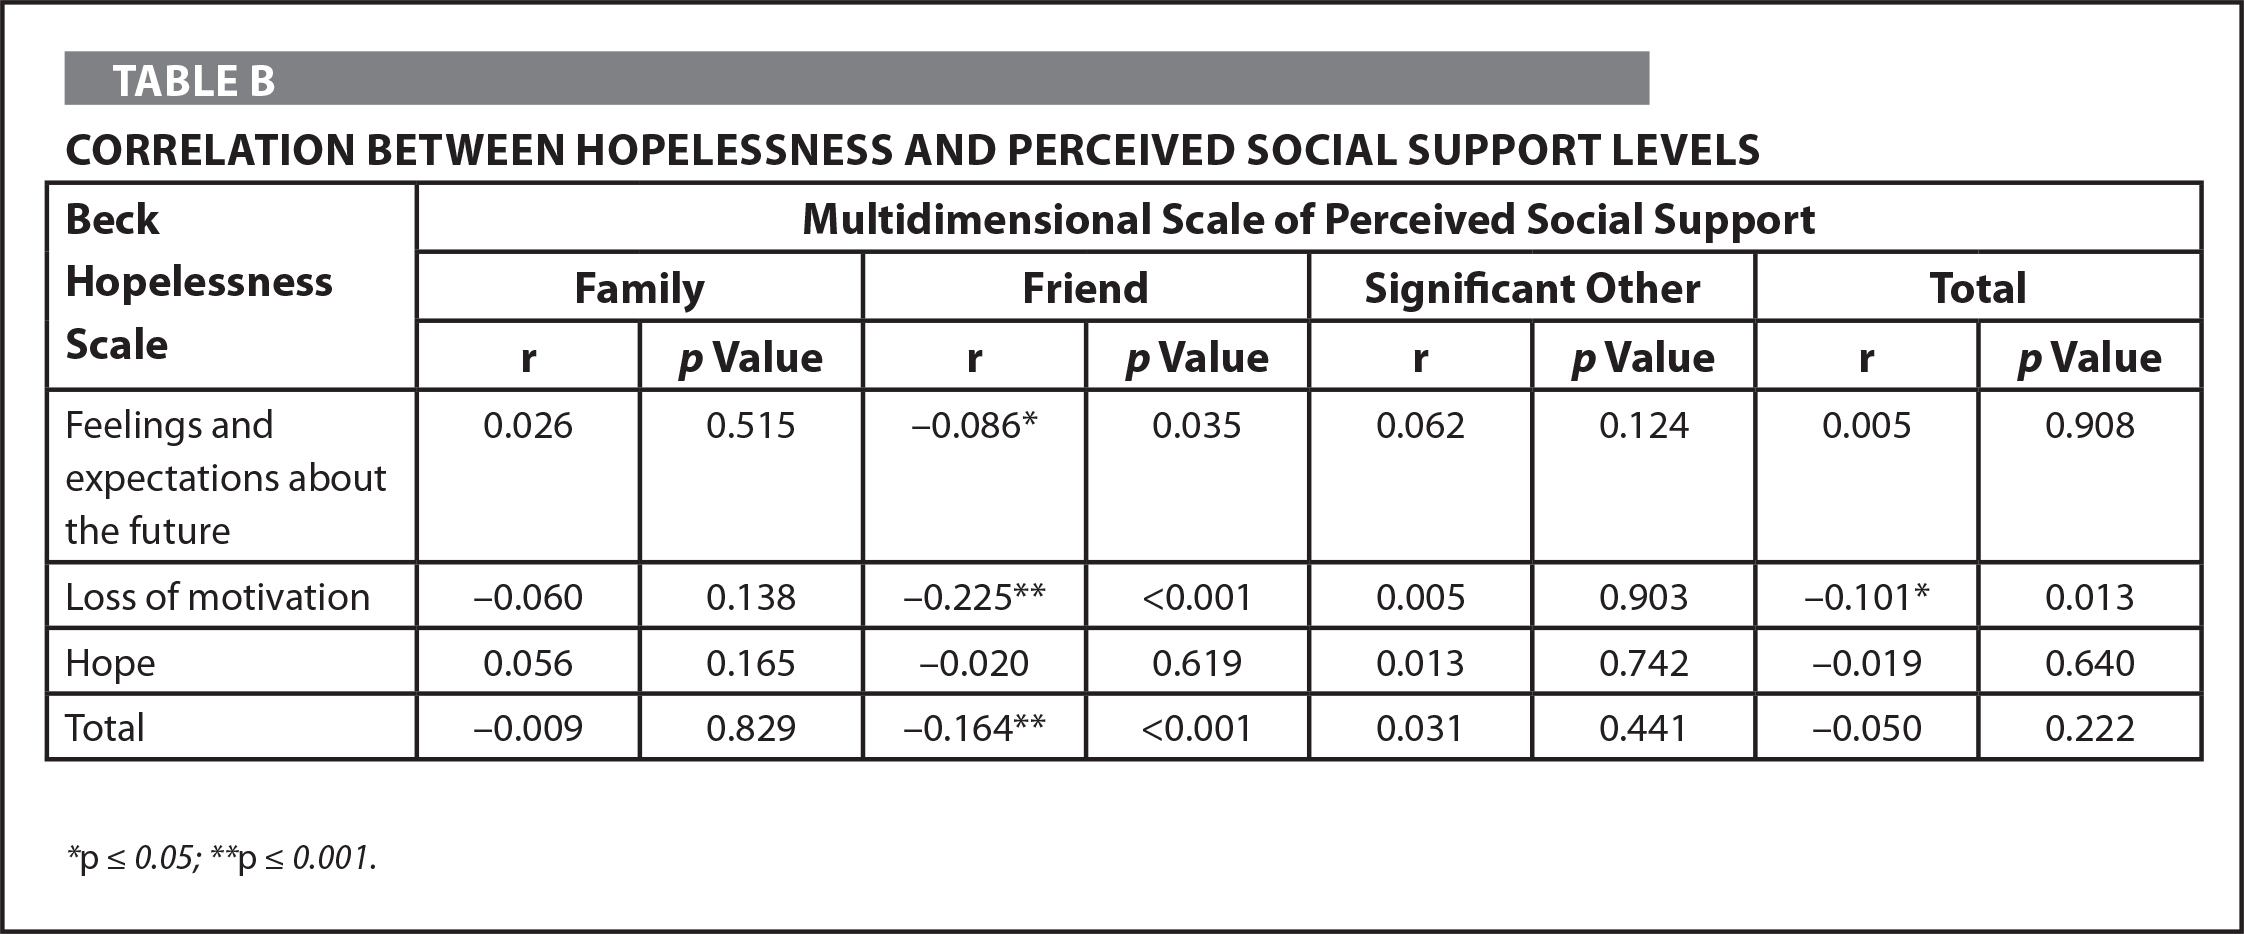 Correlation Between Hopelessness and Perceived Social Support Levels